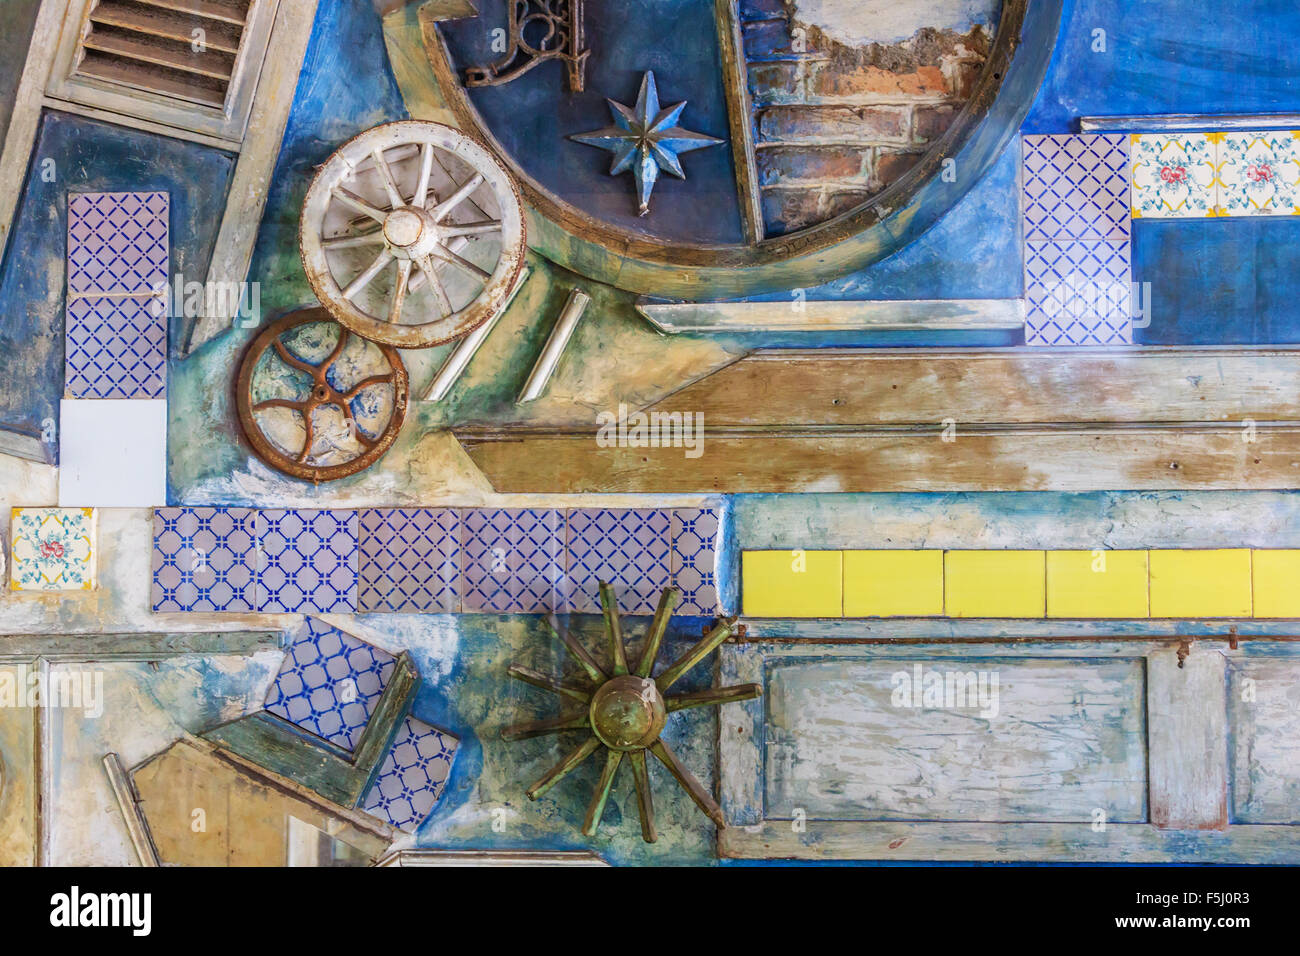 Abstract artistic installation of traditional sicilian pottery on a wall in Messina - Stock Image